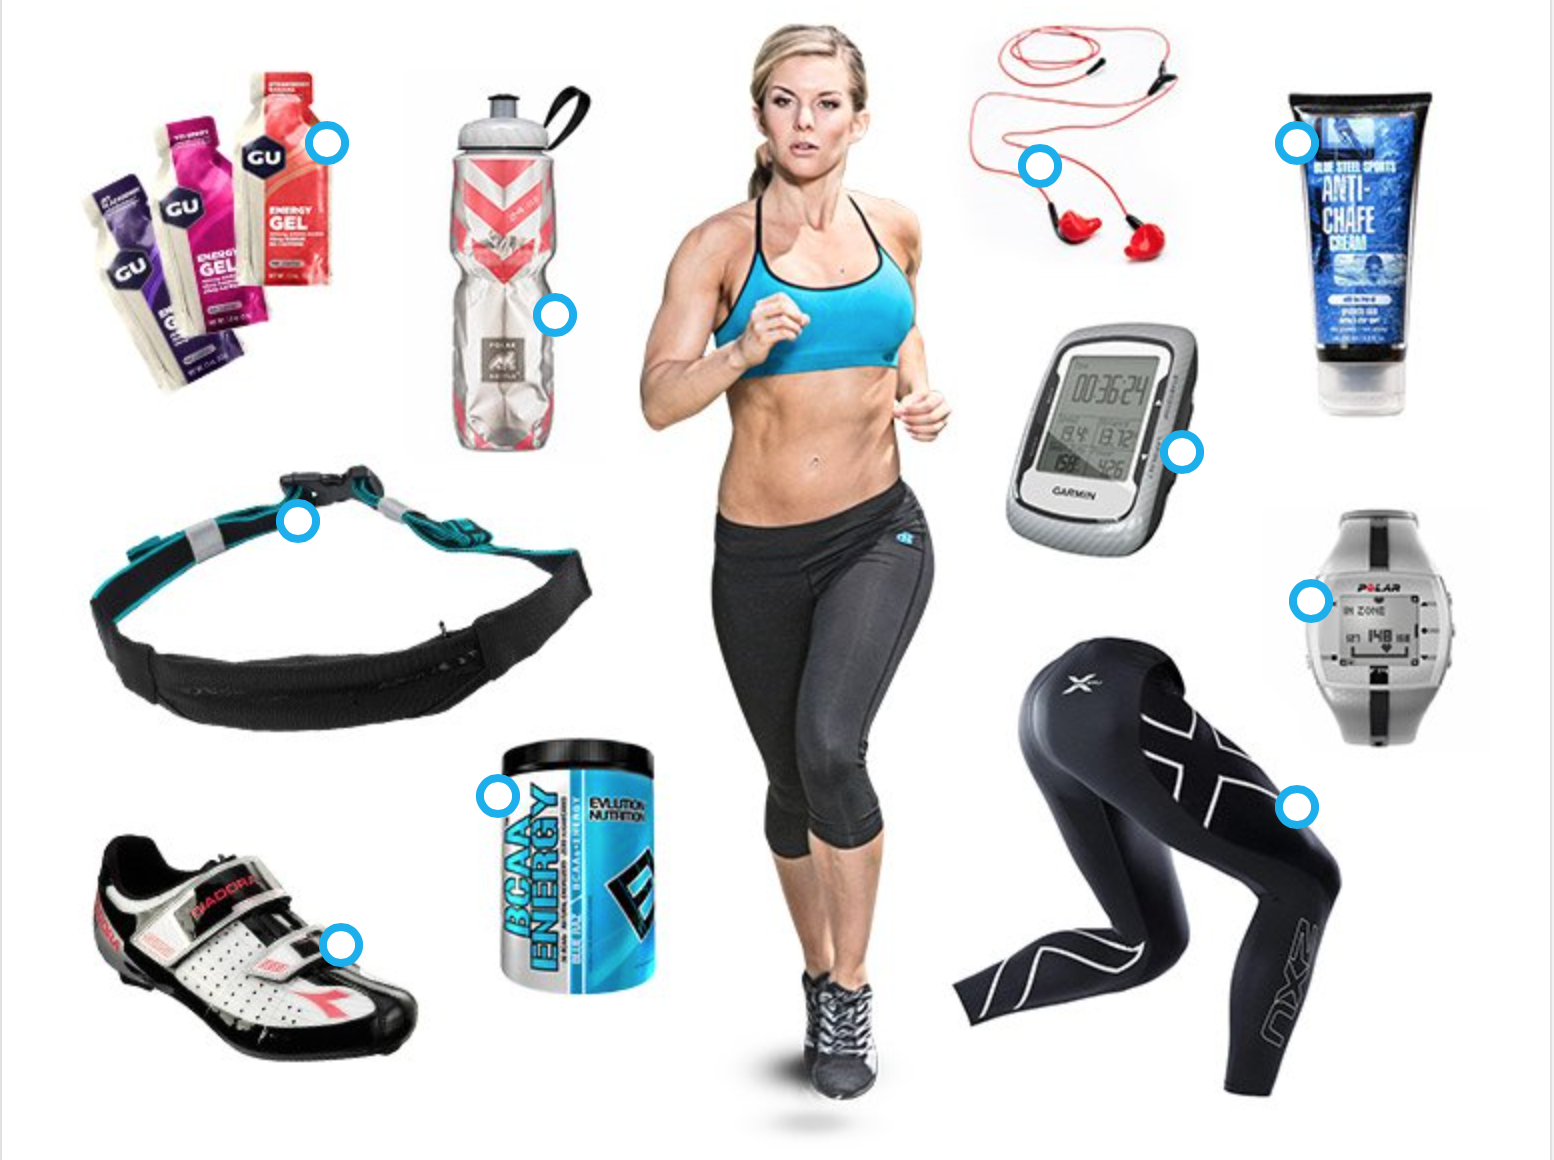 Bodybuilding.com:   Women's Fitness Buying Guide  An interactive buying guide geared towards runners, lifters, and everyone in between. Each rollover links to a retail market.